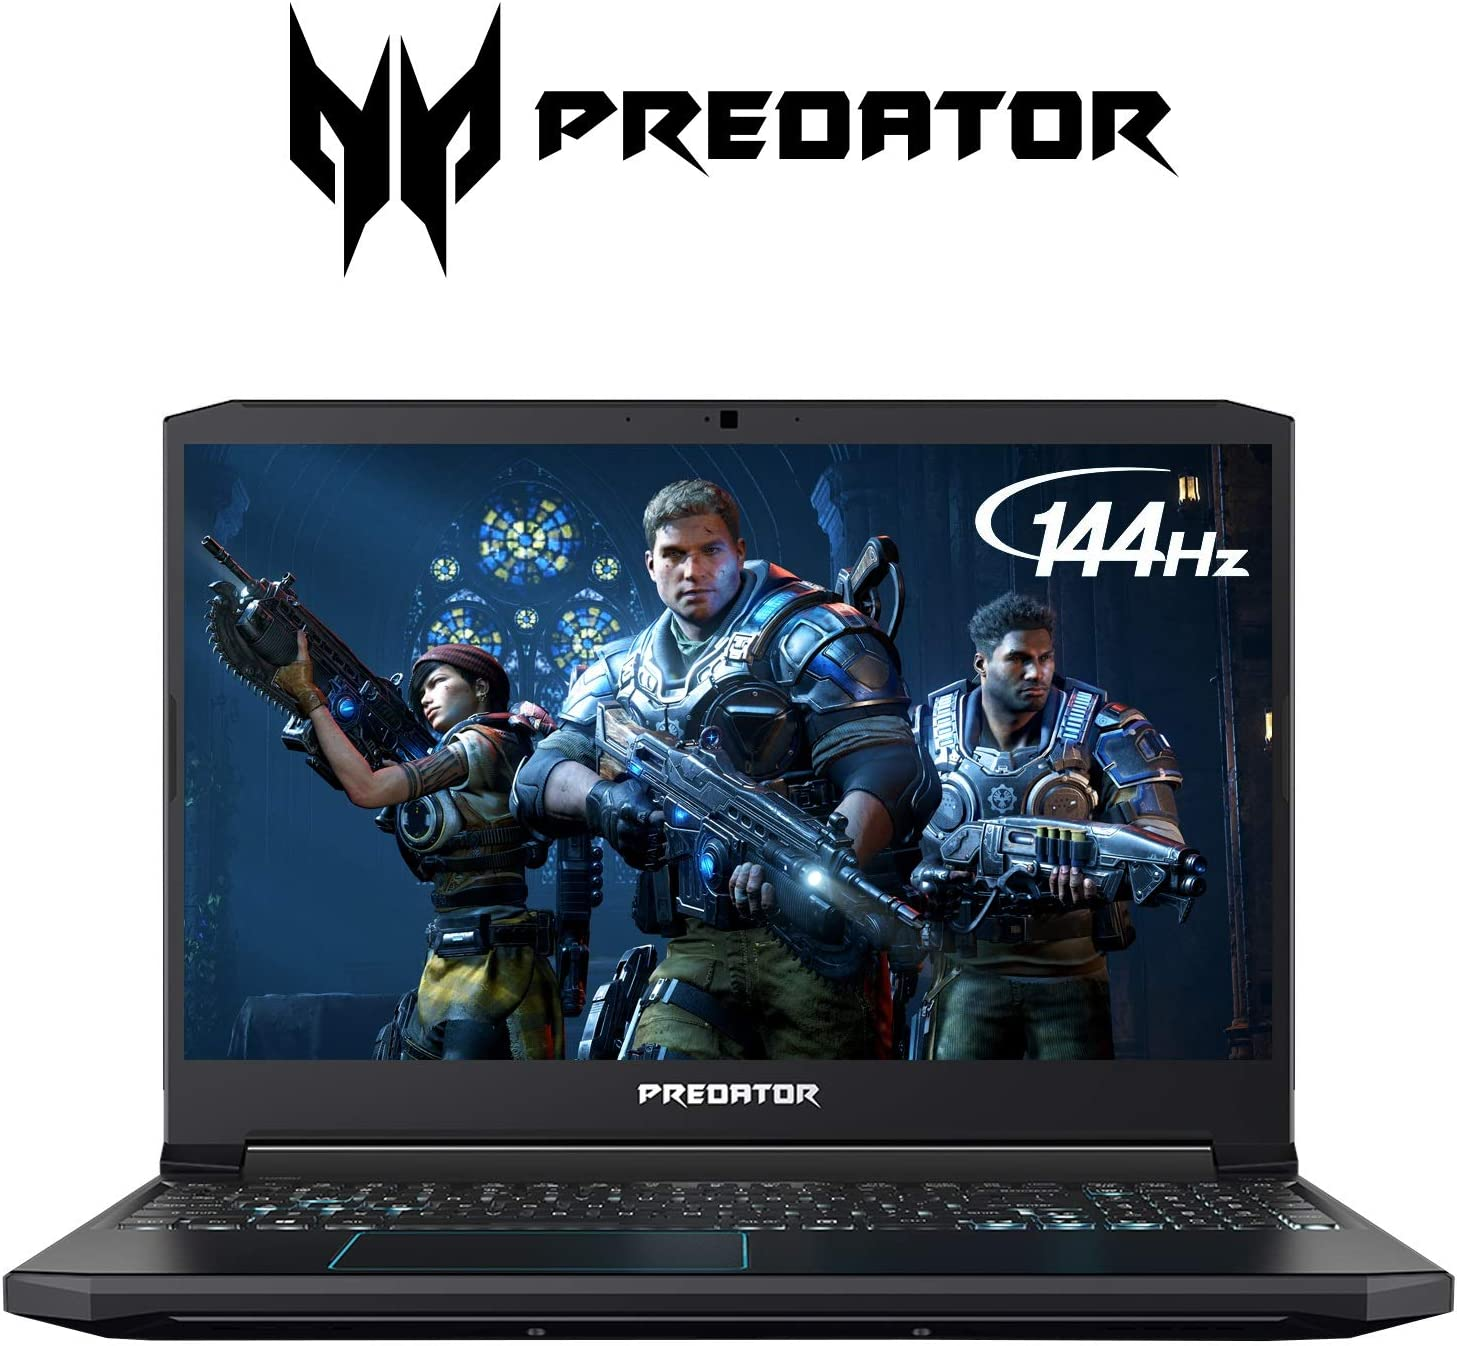 "Acer Predator Helios 300 Gaming Laptop PC, 15.6"" Full HD 144Hz 3ms IPS Display, Intel i7-9750H, GeForce GTX 1660 Ti 6GB, 16GB DDR4, 512GB NVMe SSD, RGB Keyboard, PH315-52-72RG"